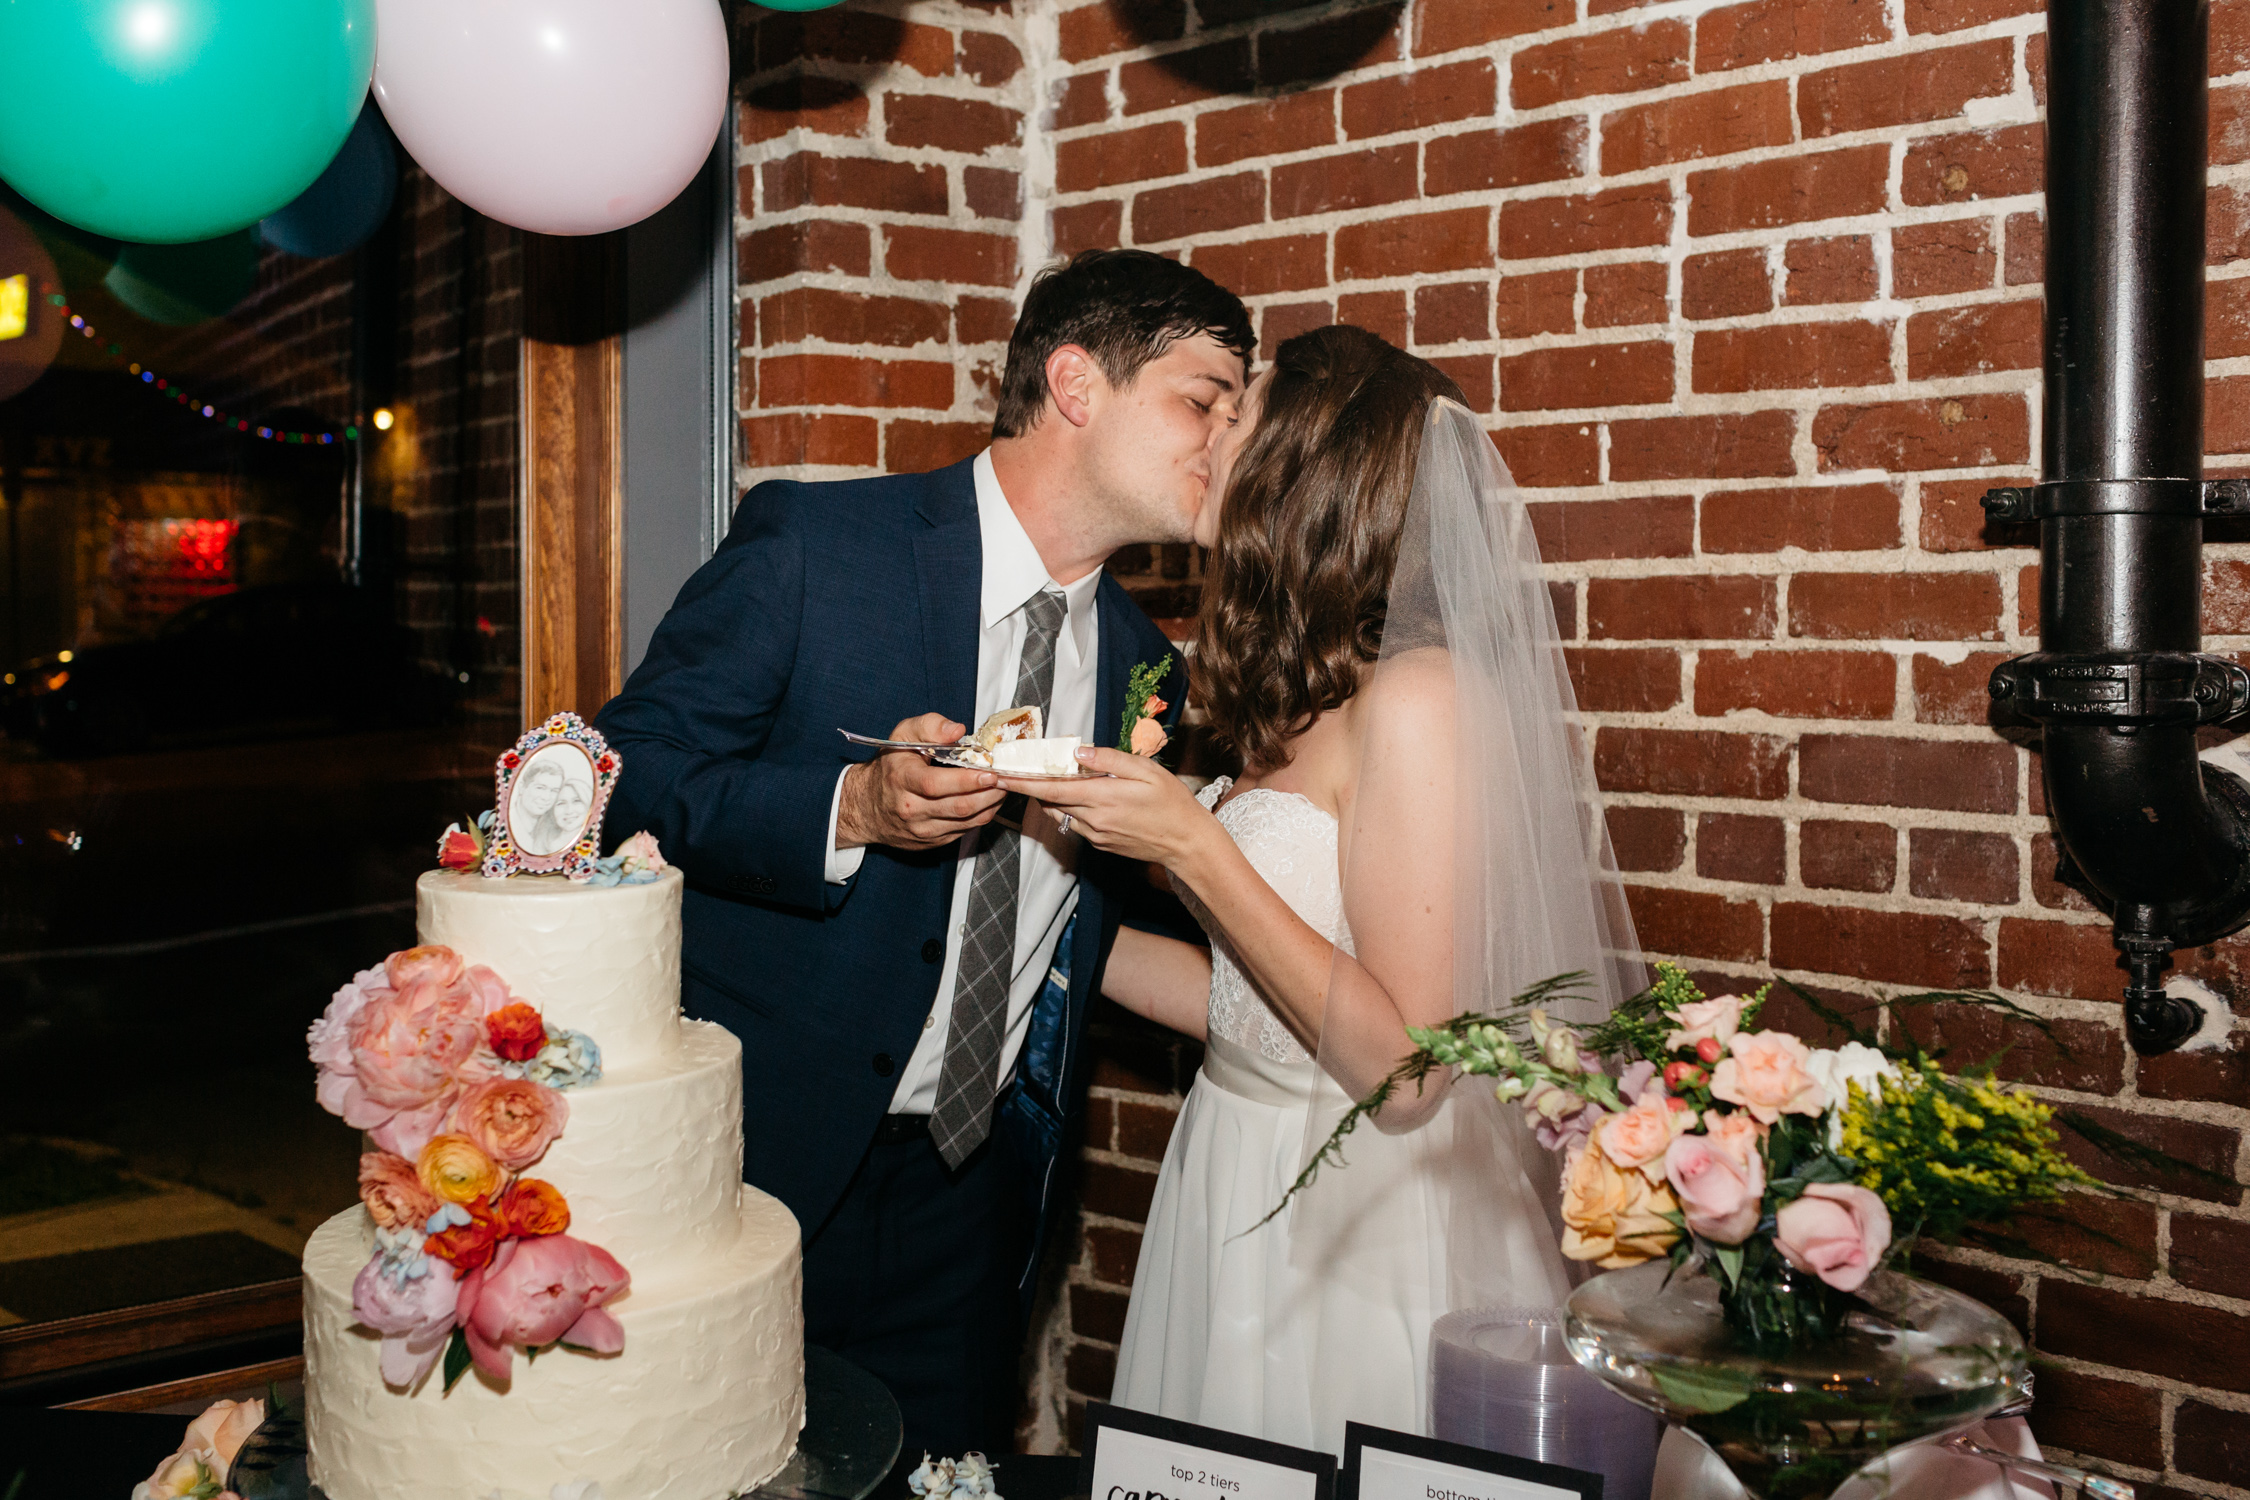 Standard Downtown Knoxville Wedding Venue Central Avenue Happy Holler Cut the cake Exposed Brick